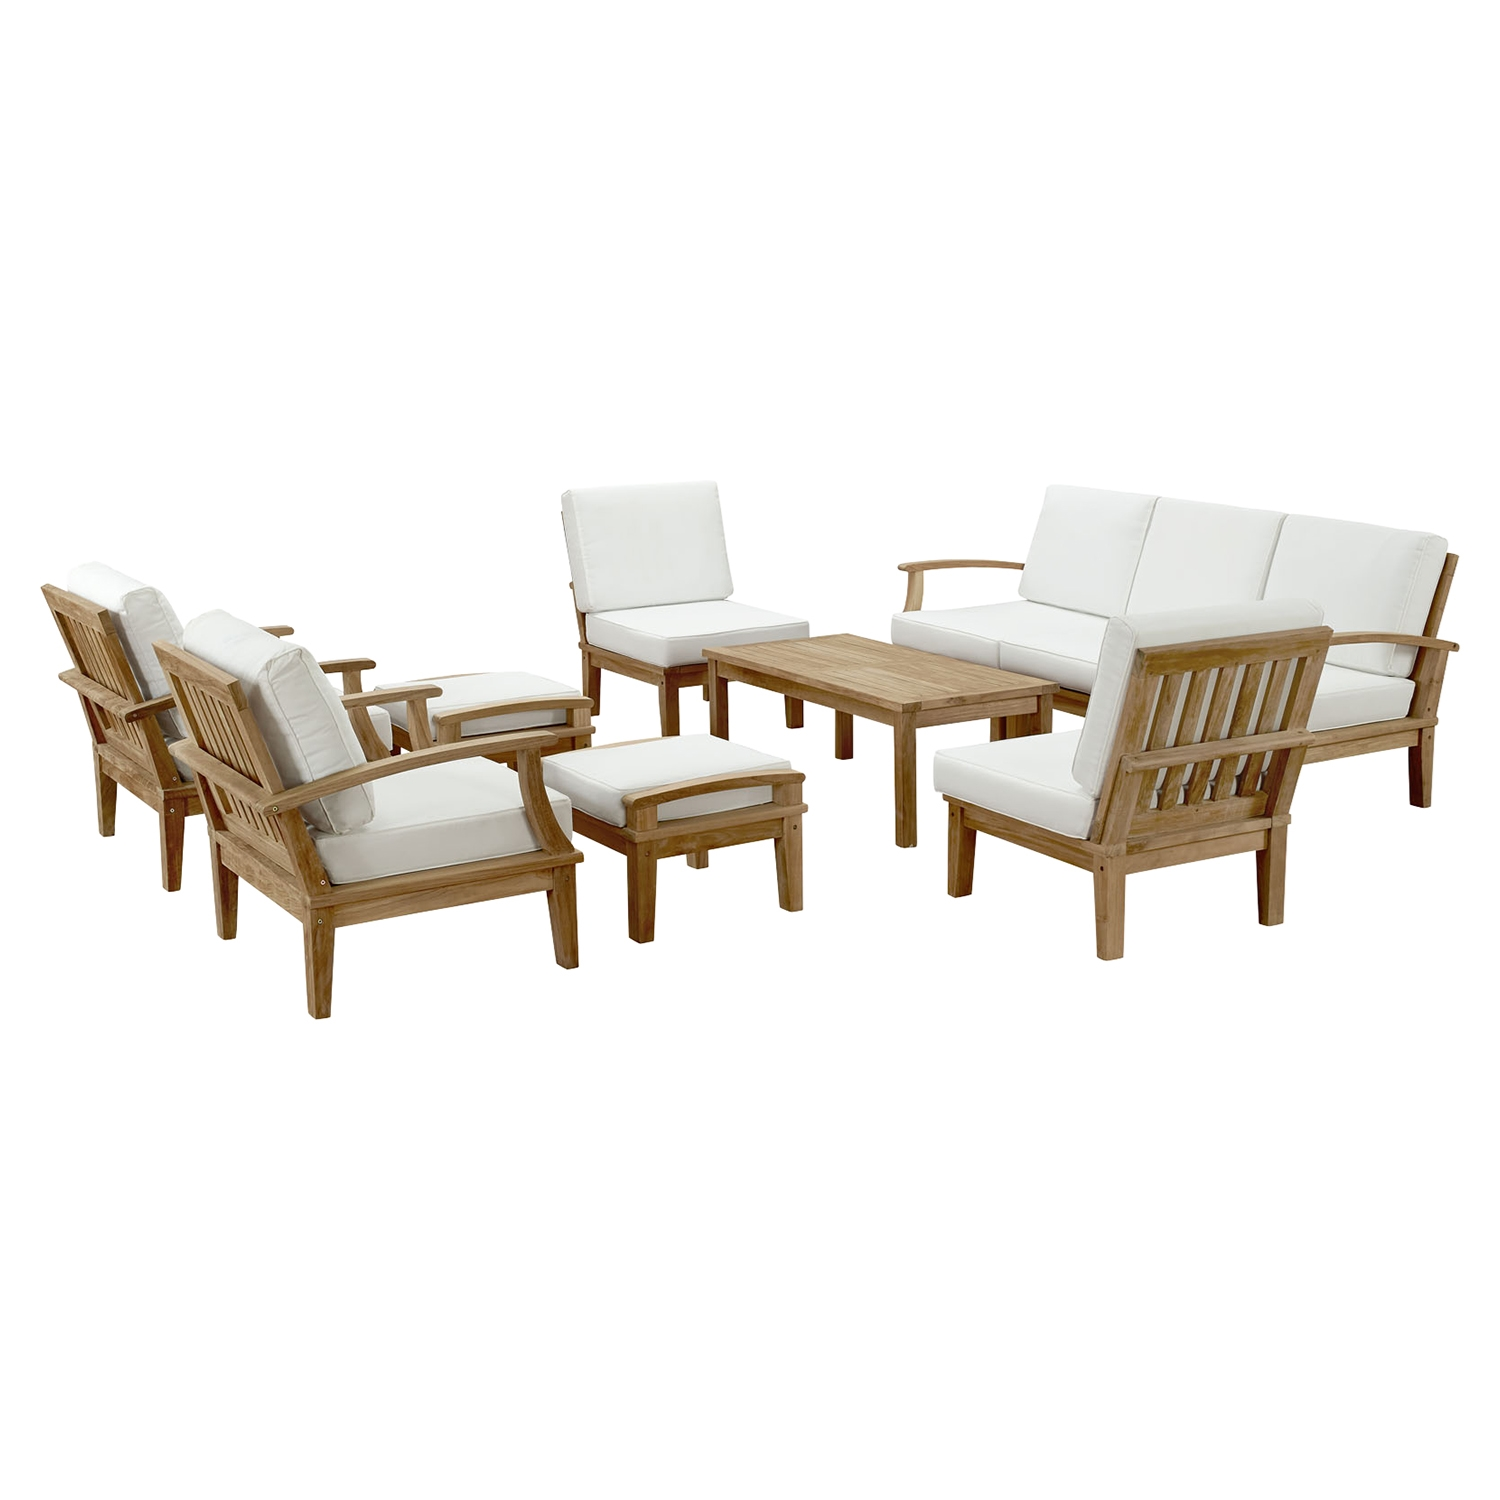 Marina 10 Pieces Patio Teak Sofa Set - Natural, White - EEI-1480-NAT-WHI-SET